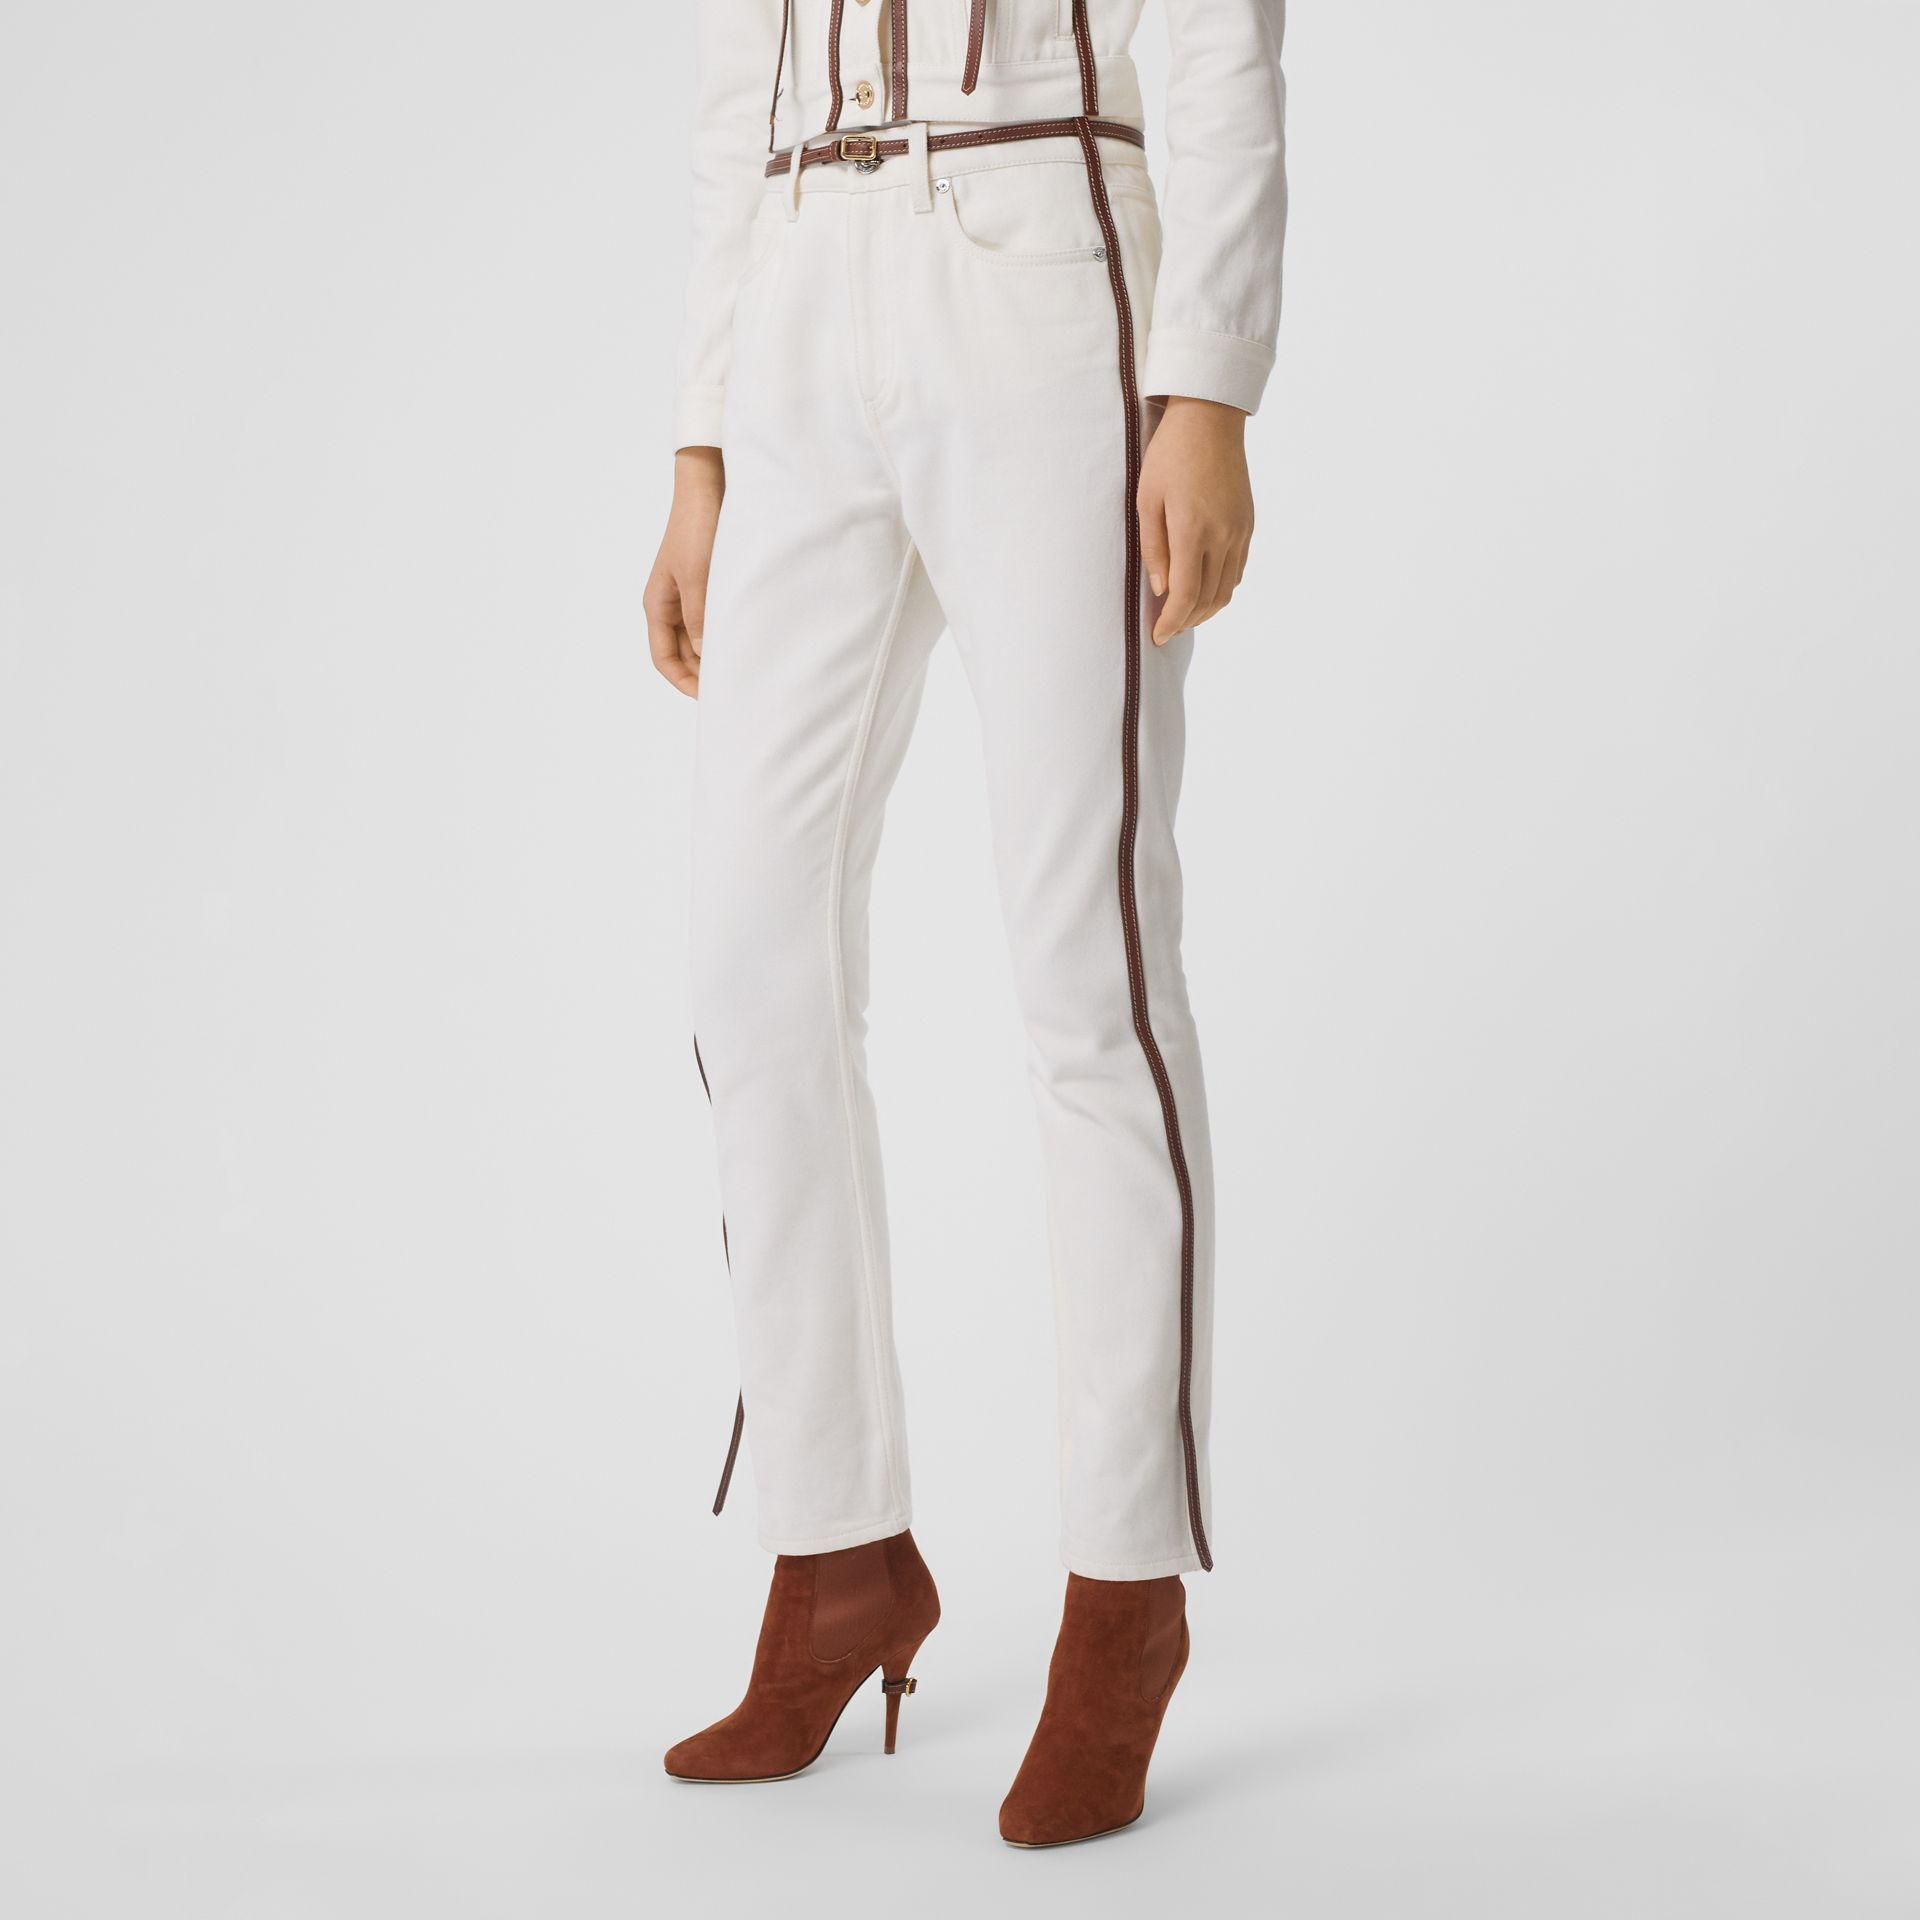 Straight Fit Leather Harness Detail Jeans in Off White - Women | Burberry Canada - gallery image 5